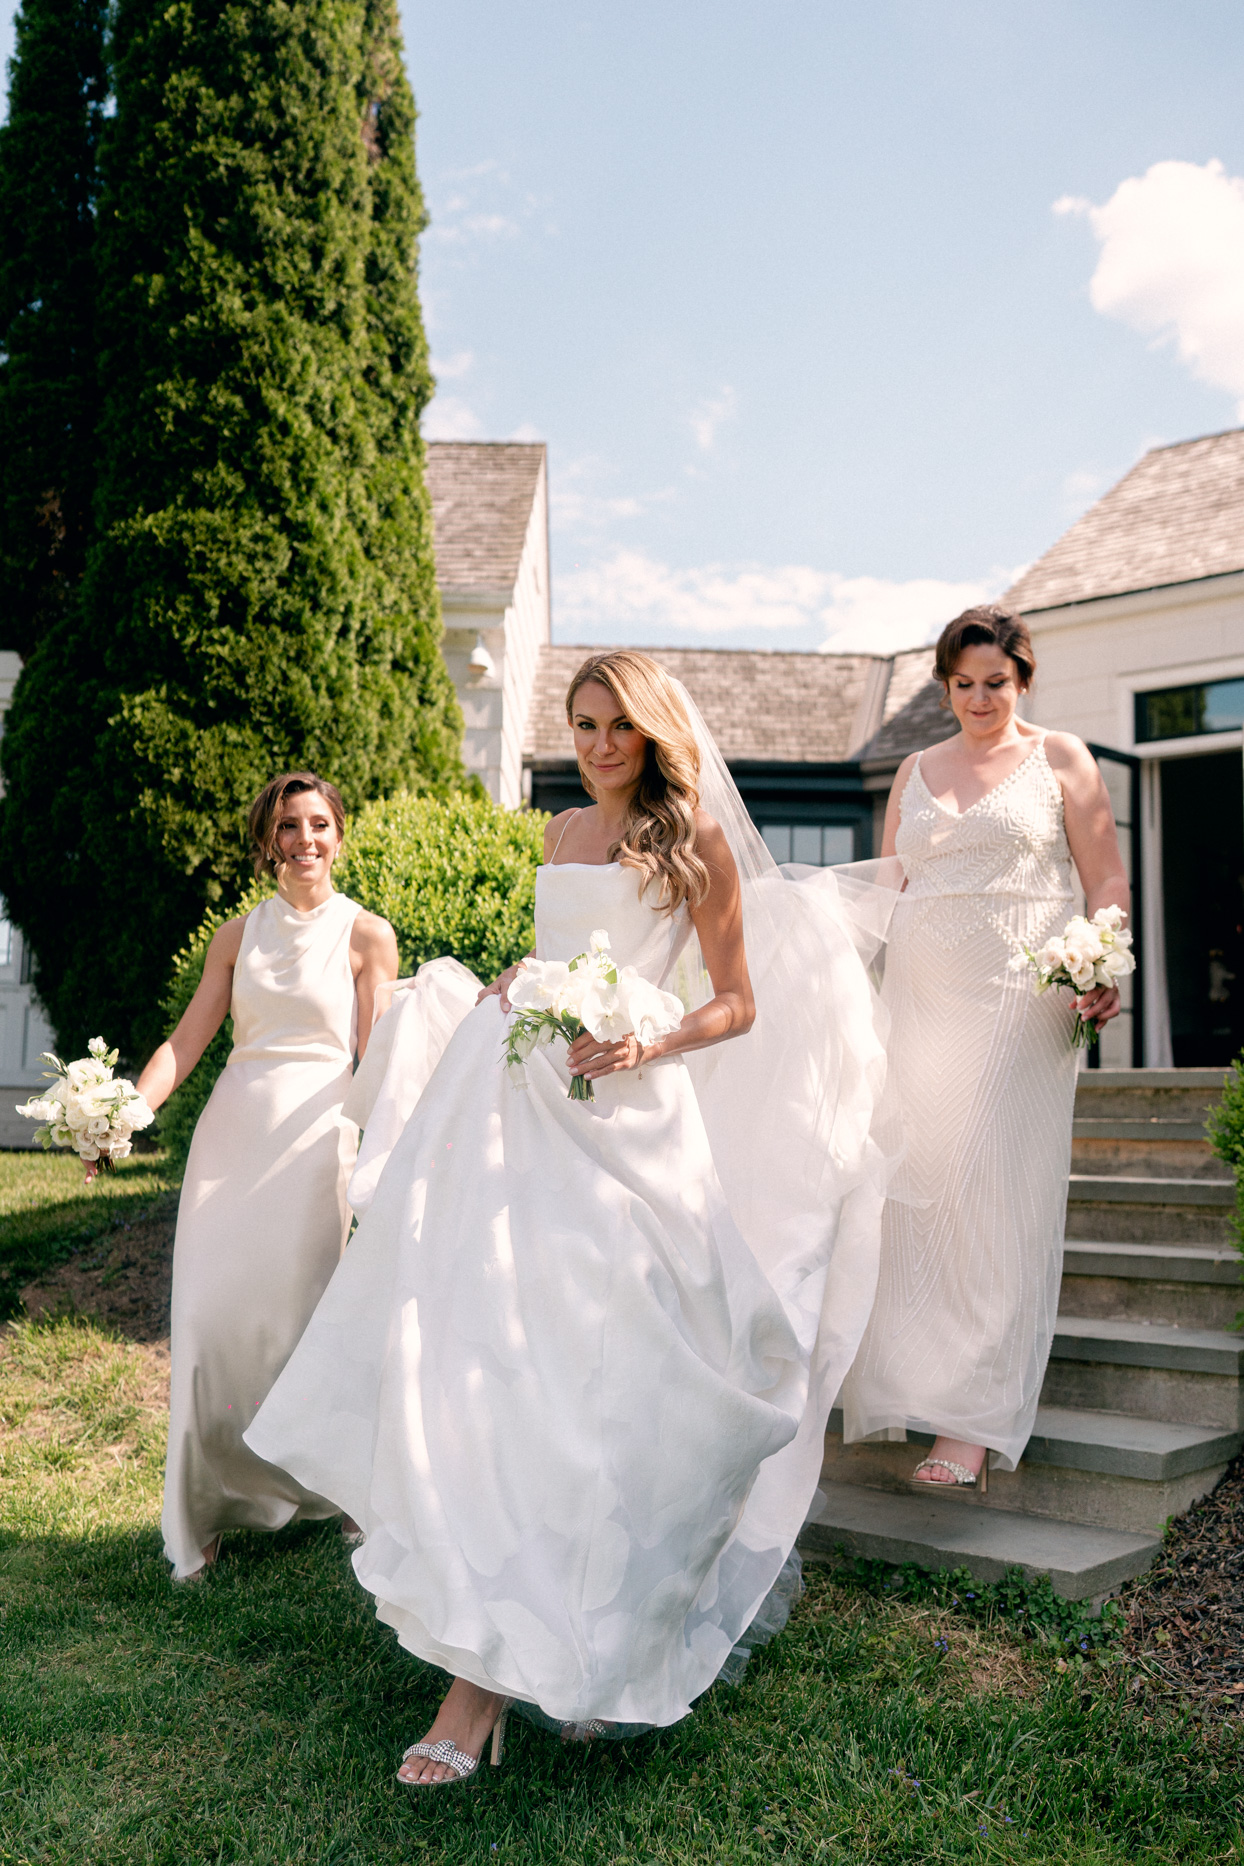 bridesmaids walking with bride carrying her dress